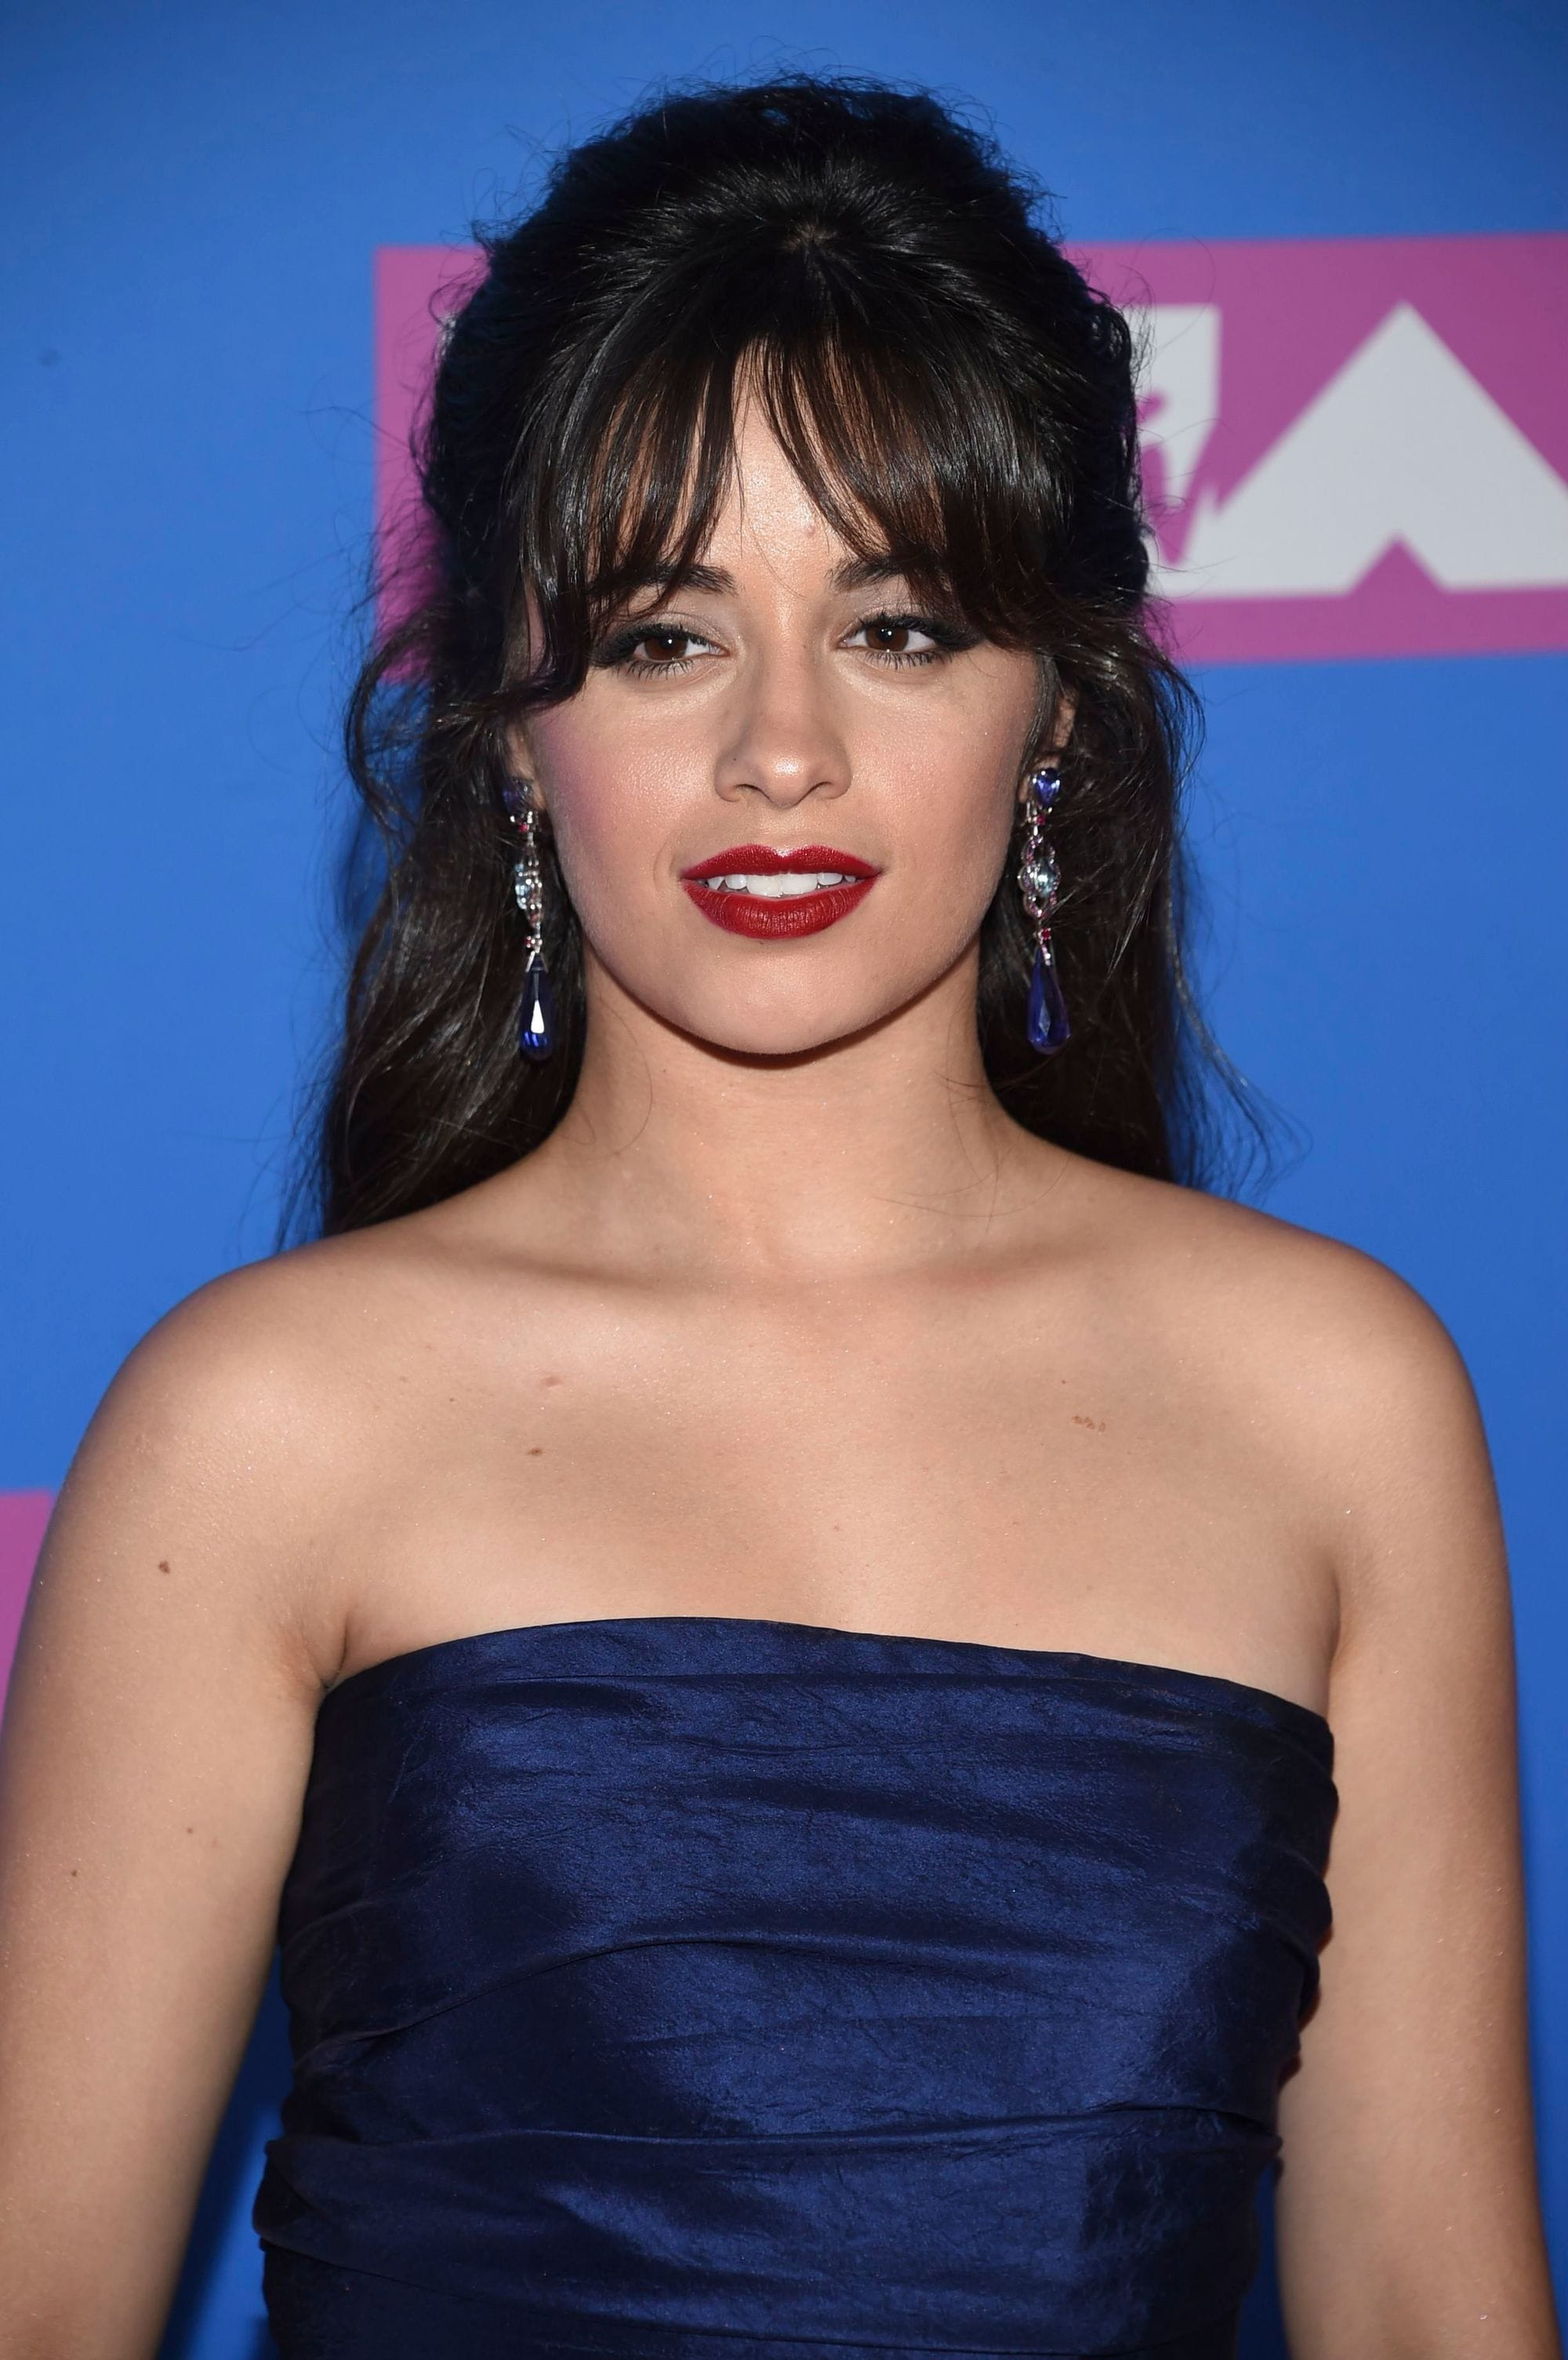 Red carpet hairstyles: Camila Cabello with long chocolate brown hair styled into a half-up, half-down updo, complete with curtain bangs on the VMA red carpet.